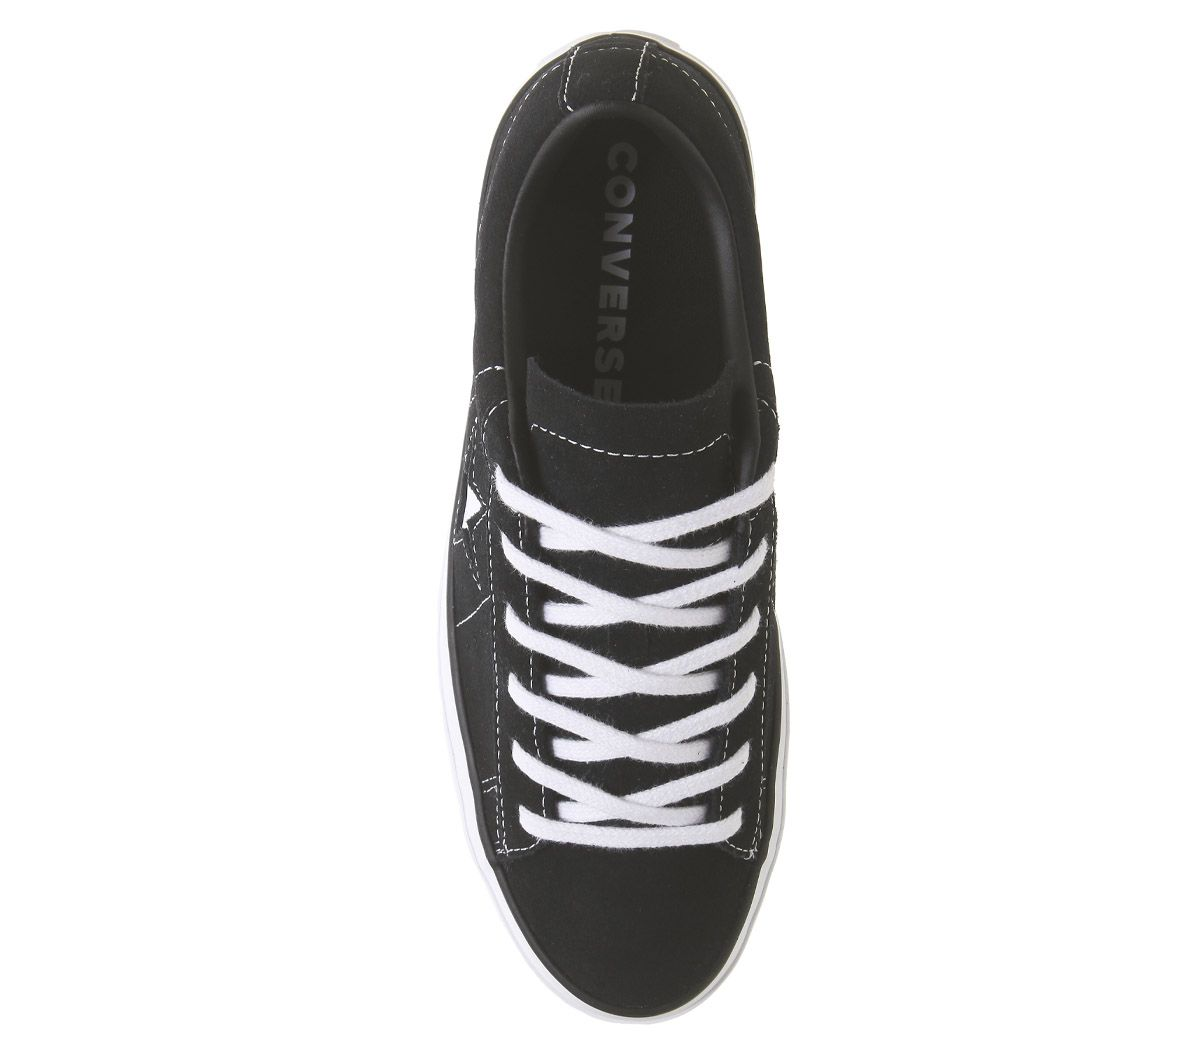 Womens-Converse-One-Star-Platform-Trainers-Black-Black-White-Trainers-Shoes thumbnail 9